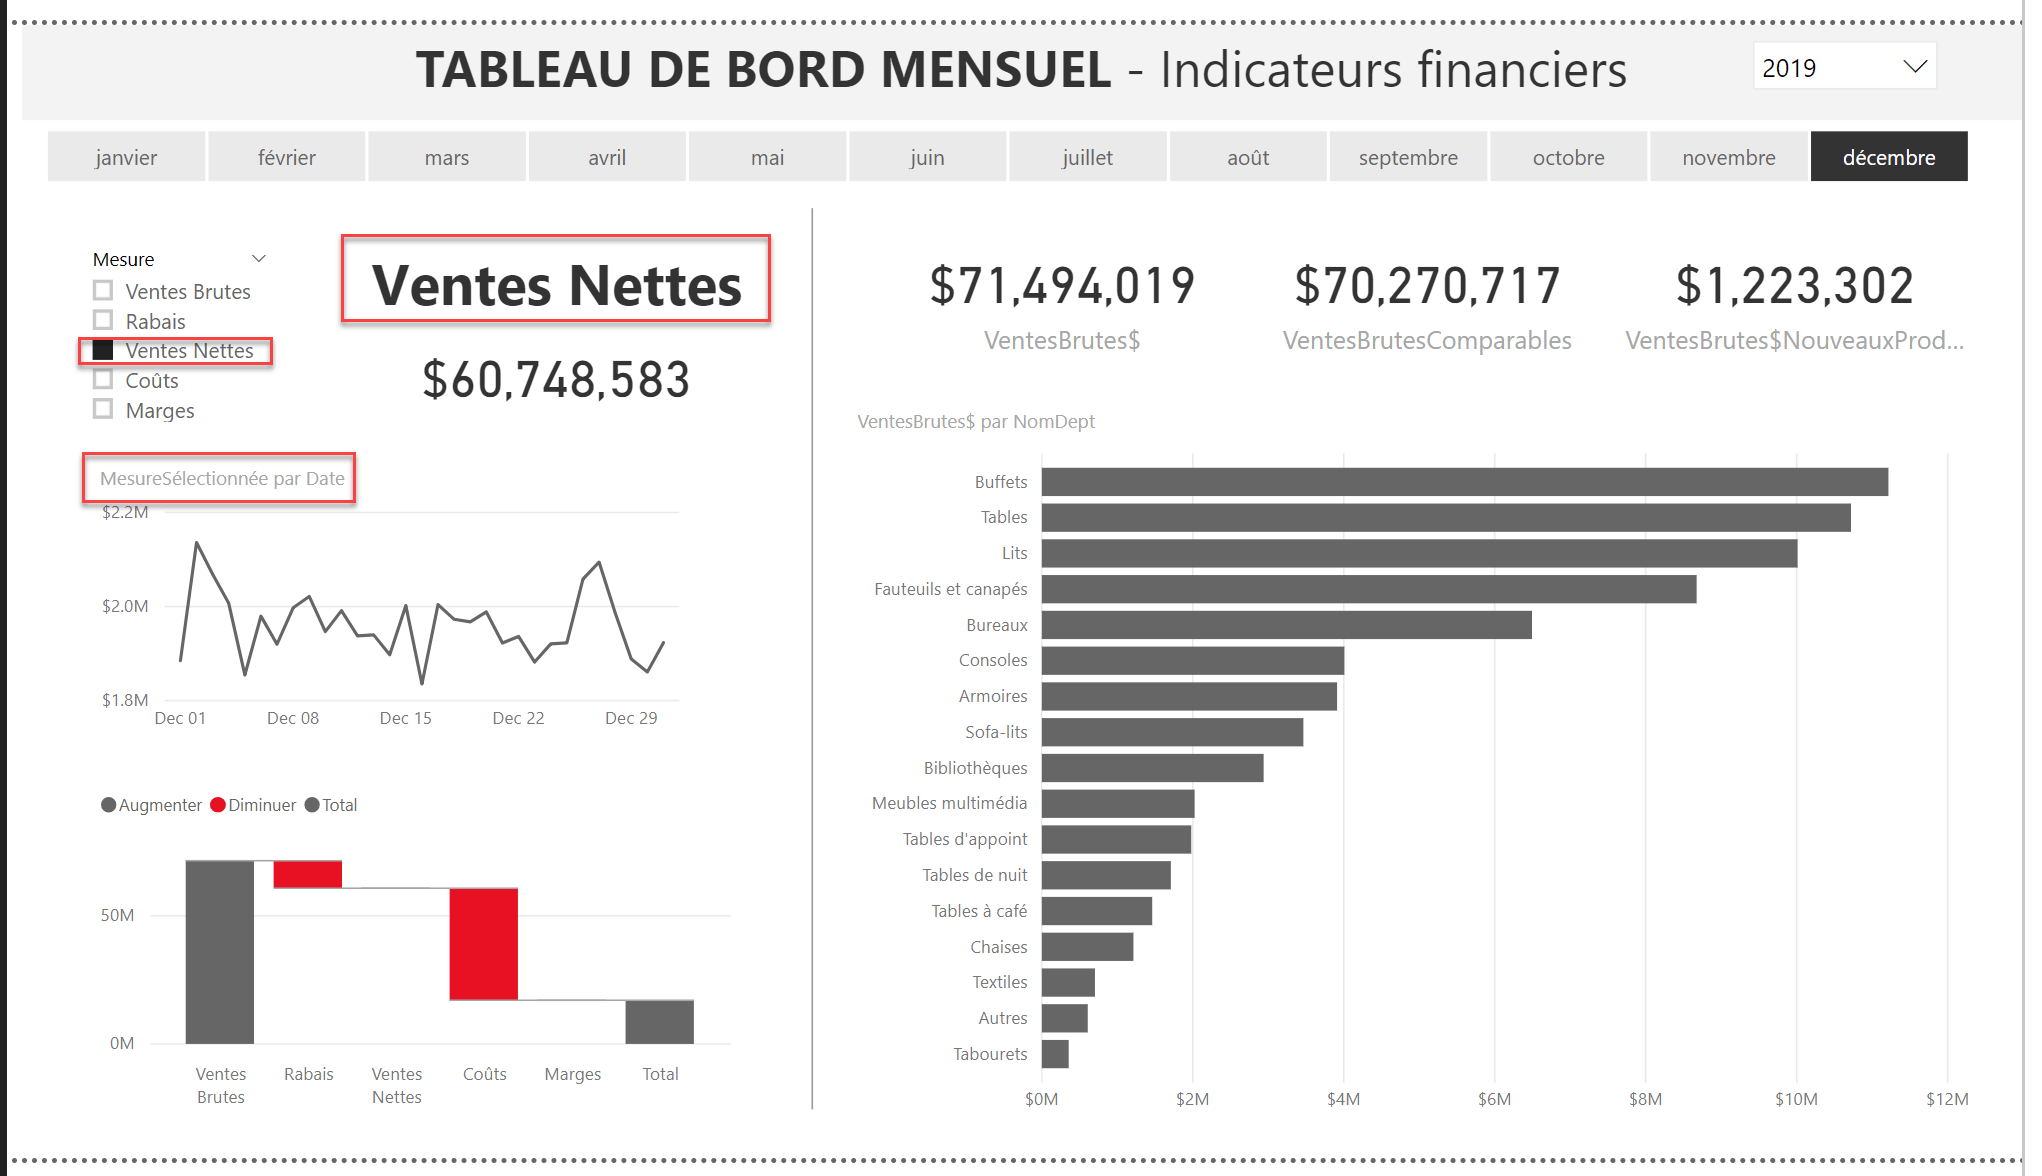 Rapport Power BI Sans titre avec format conditionnel